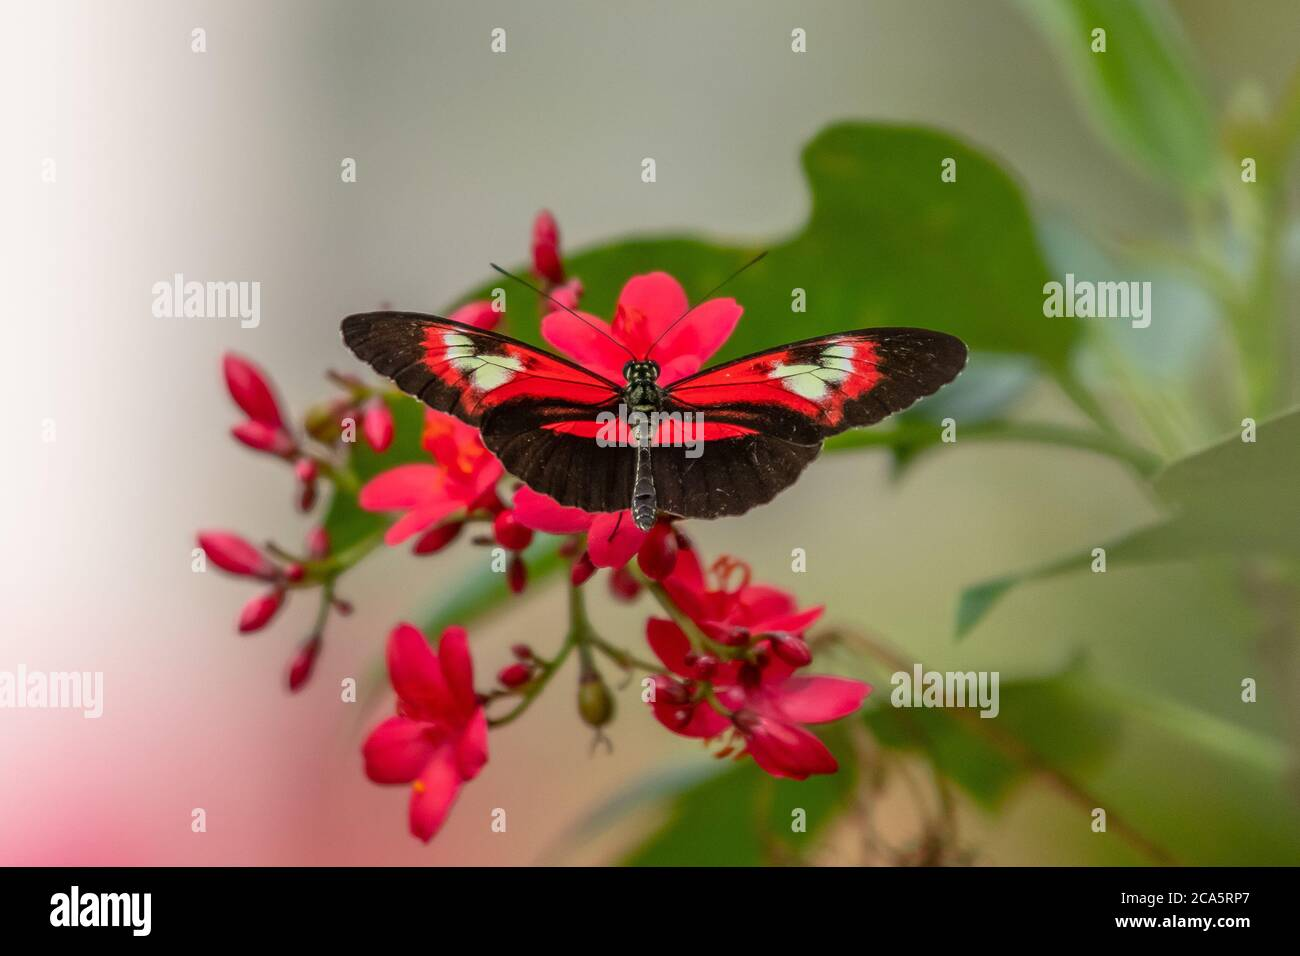 Piano Key Butterfly gathering nectar from a flower Stock Photo